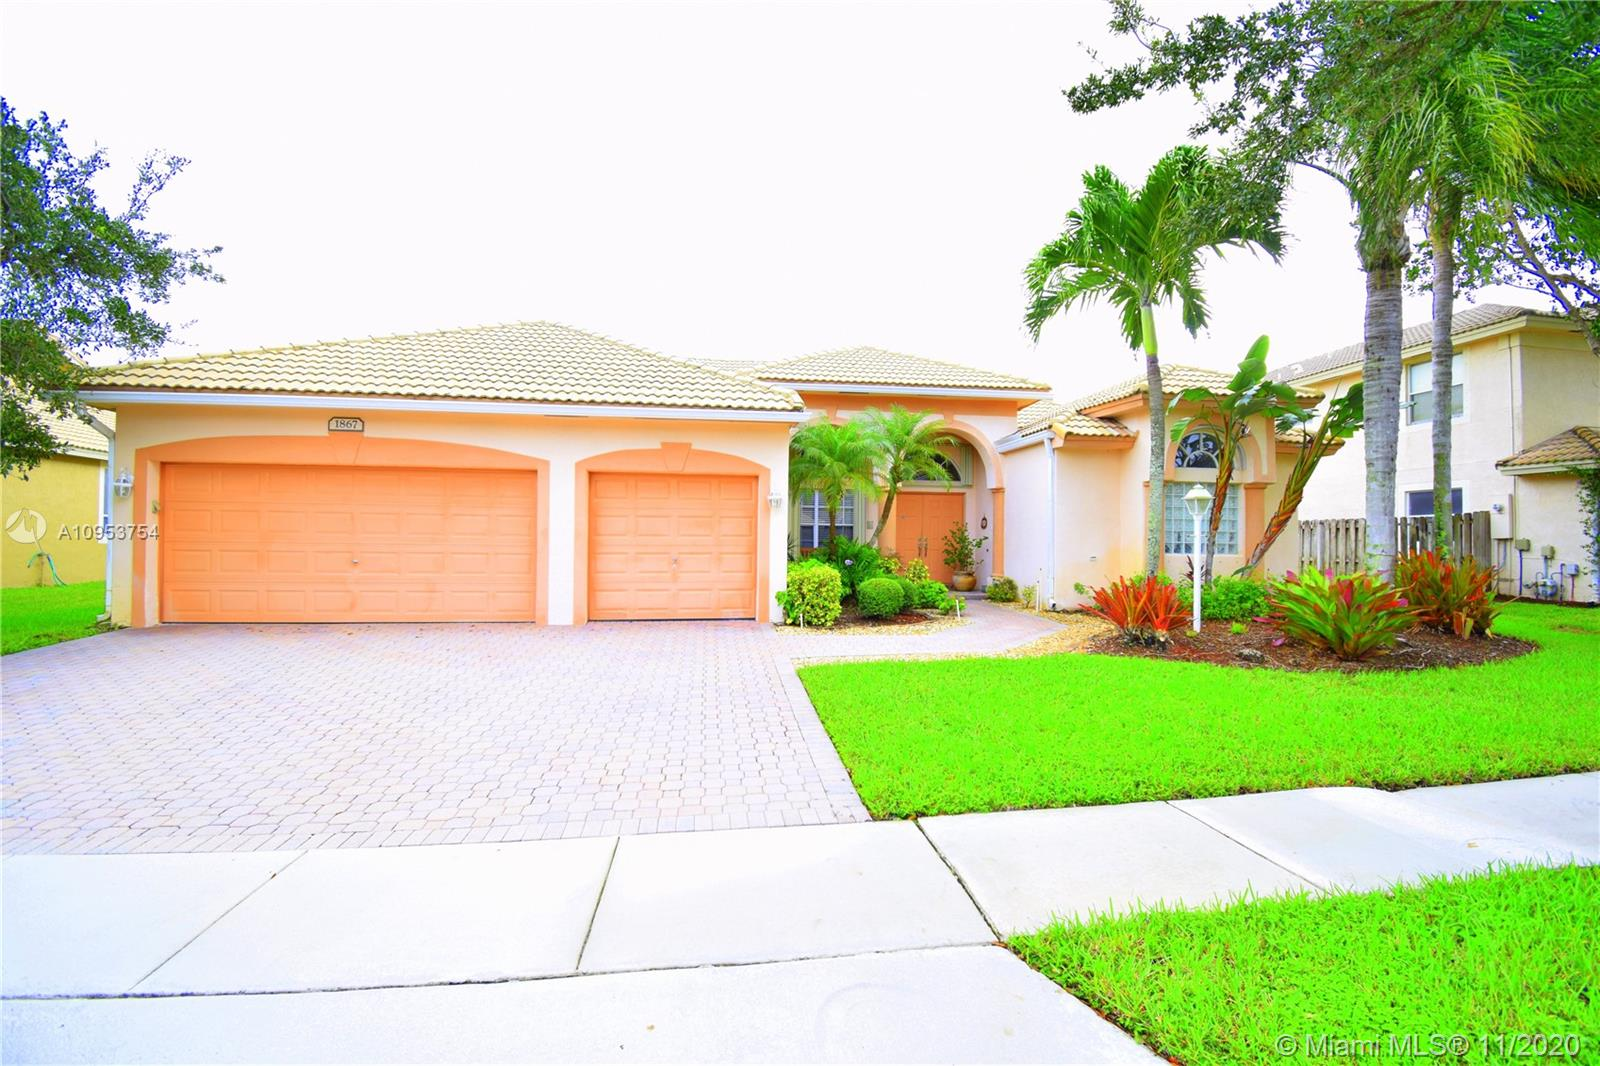 Beautiful and spacious one story home with 3 car garage, YALE model in the exclusive gated community of Pembroke Falls. This great move in ready property features 3 way split floorplan, high ceilings, crown molding, natural light, tile floors throughout the home, and accordion shutters. Large patio with plenty of room for a pool. Stainless Steel appliances. A must see! HOA includes alarm, internet, basic cable tv, 5 star clubhouse with ballroom, aerobics room, gym, pool, kids playground, tennis courts and basketball courts. Easy access to 1-75, parks, restaurants, malls and hospitals.